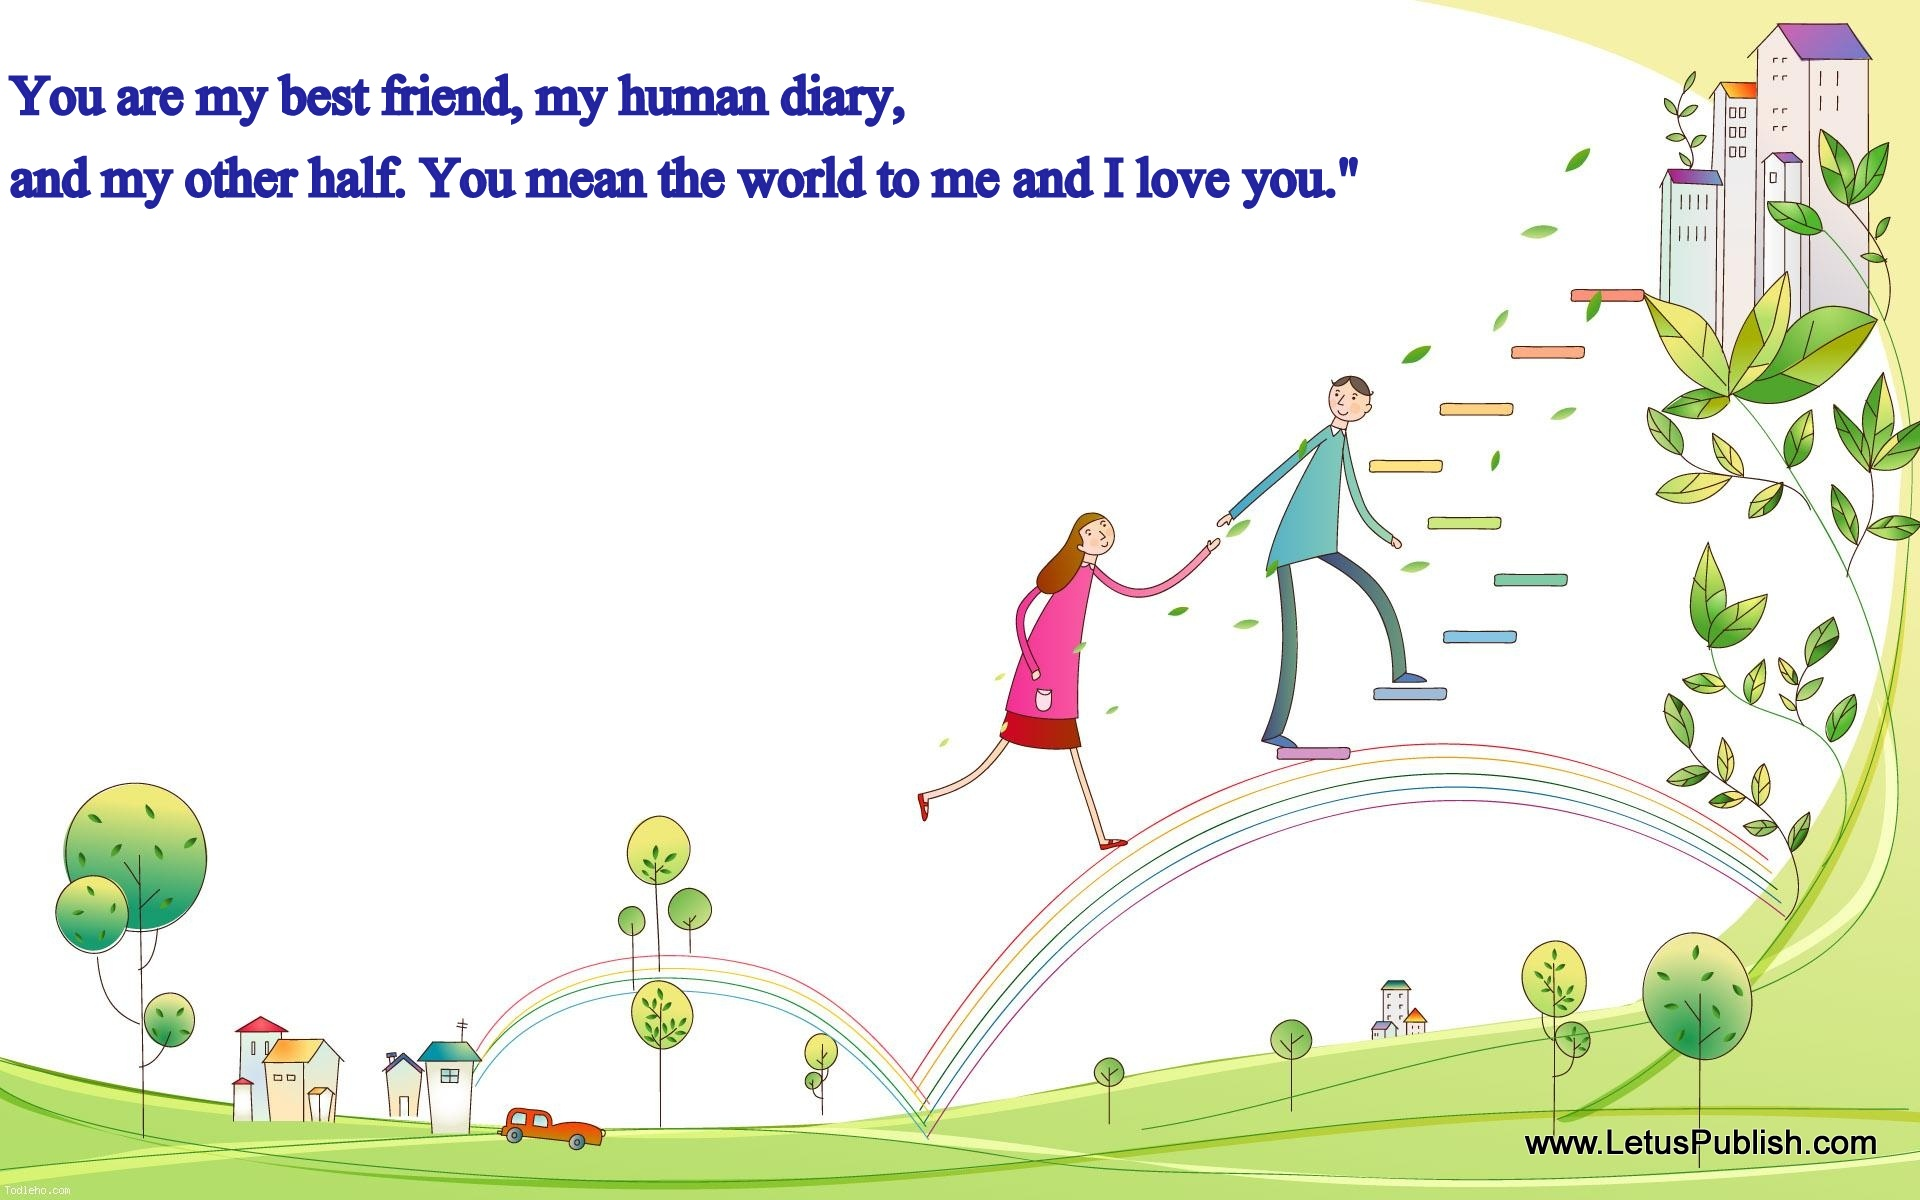 Cute love Images - I Love You